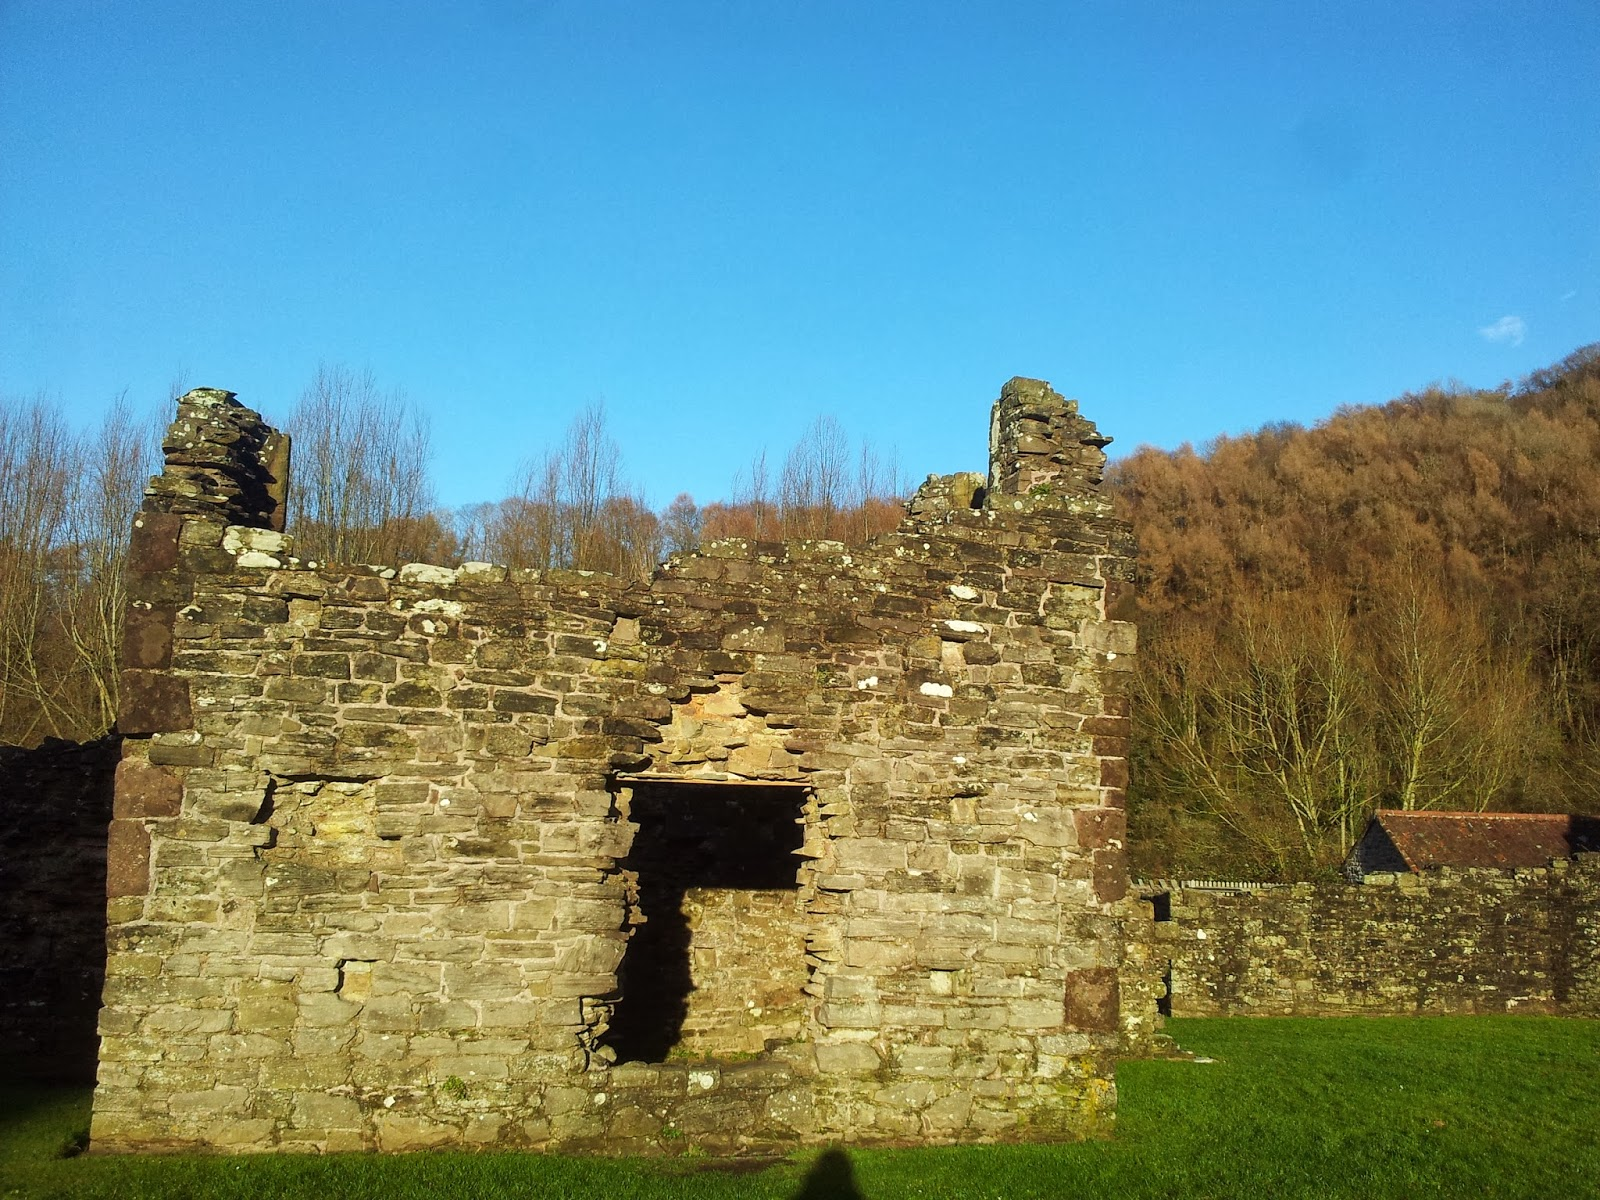 Another ruin at Tintern Abbey